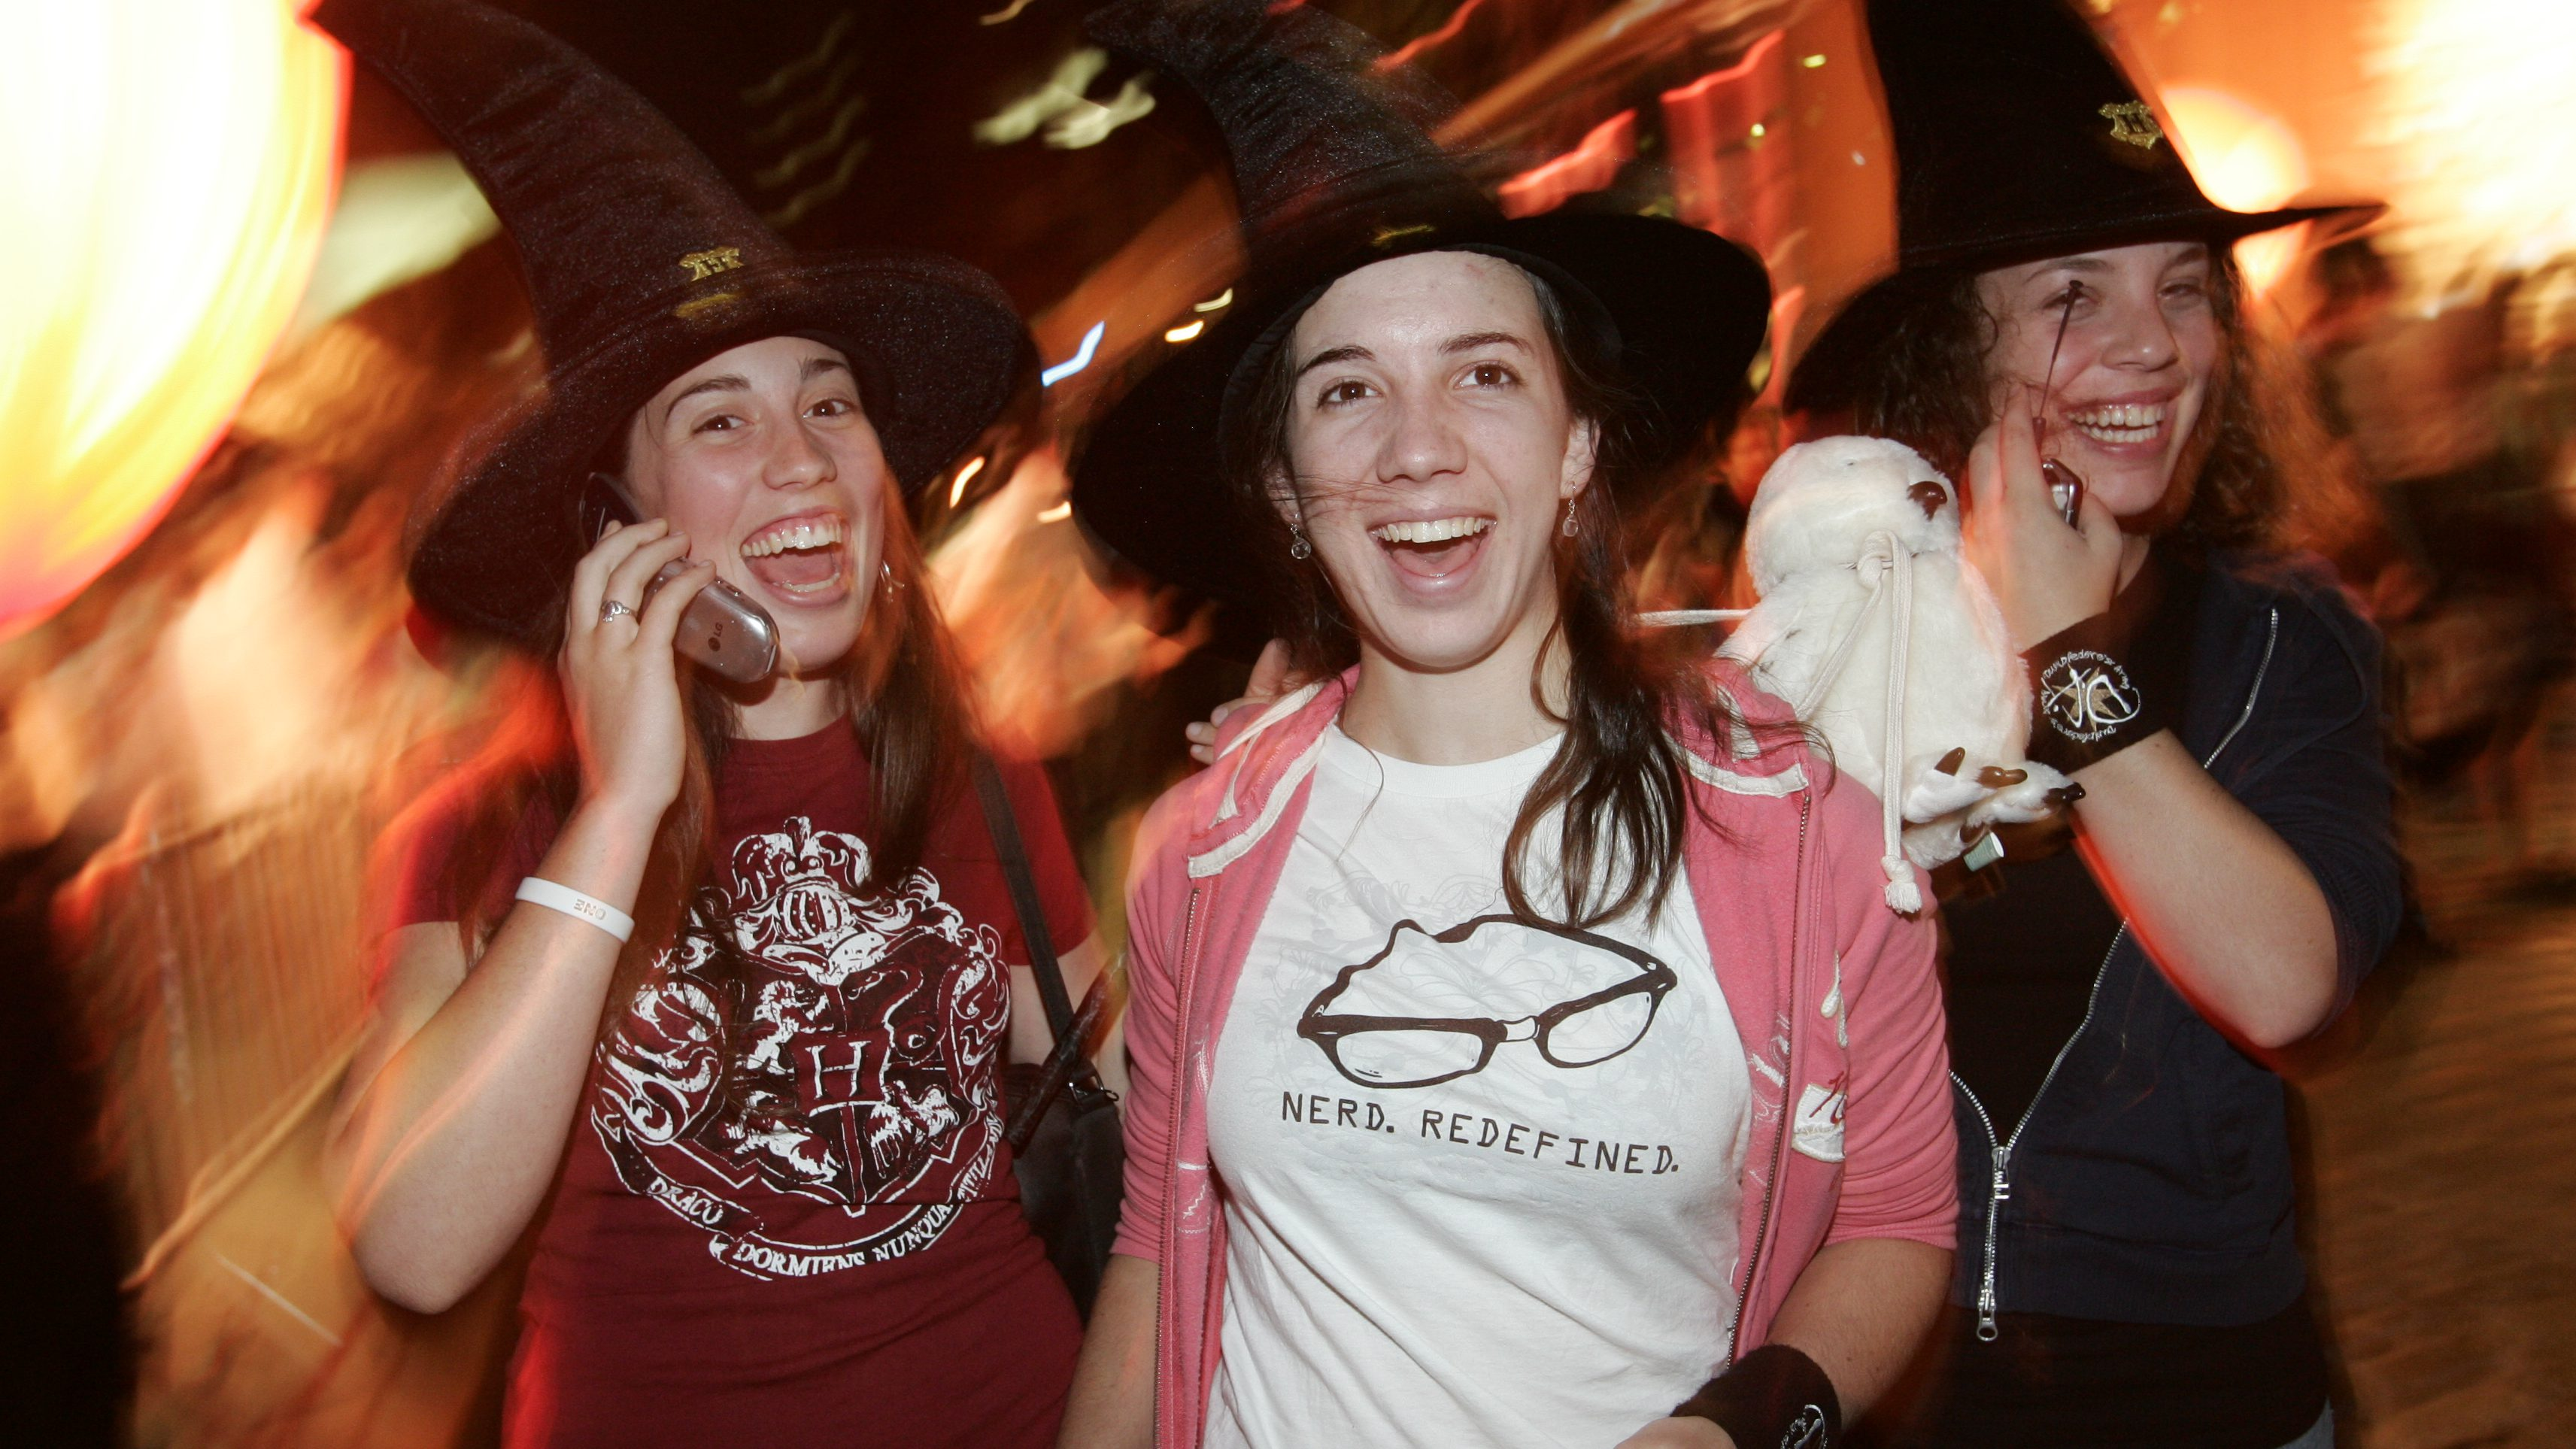 Costumed fans pose at the Harry Potter and the Deathly Hallows book release party at the Scholastic Book publishers headquarters in New York, July 21, 2007. (AP Images/Clark Jones/Courtesy of Scholastic, Inc.) ***FOR EDITORIAL USE ONLY***